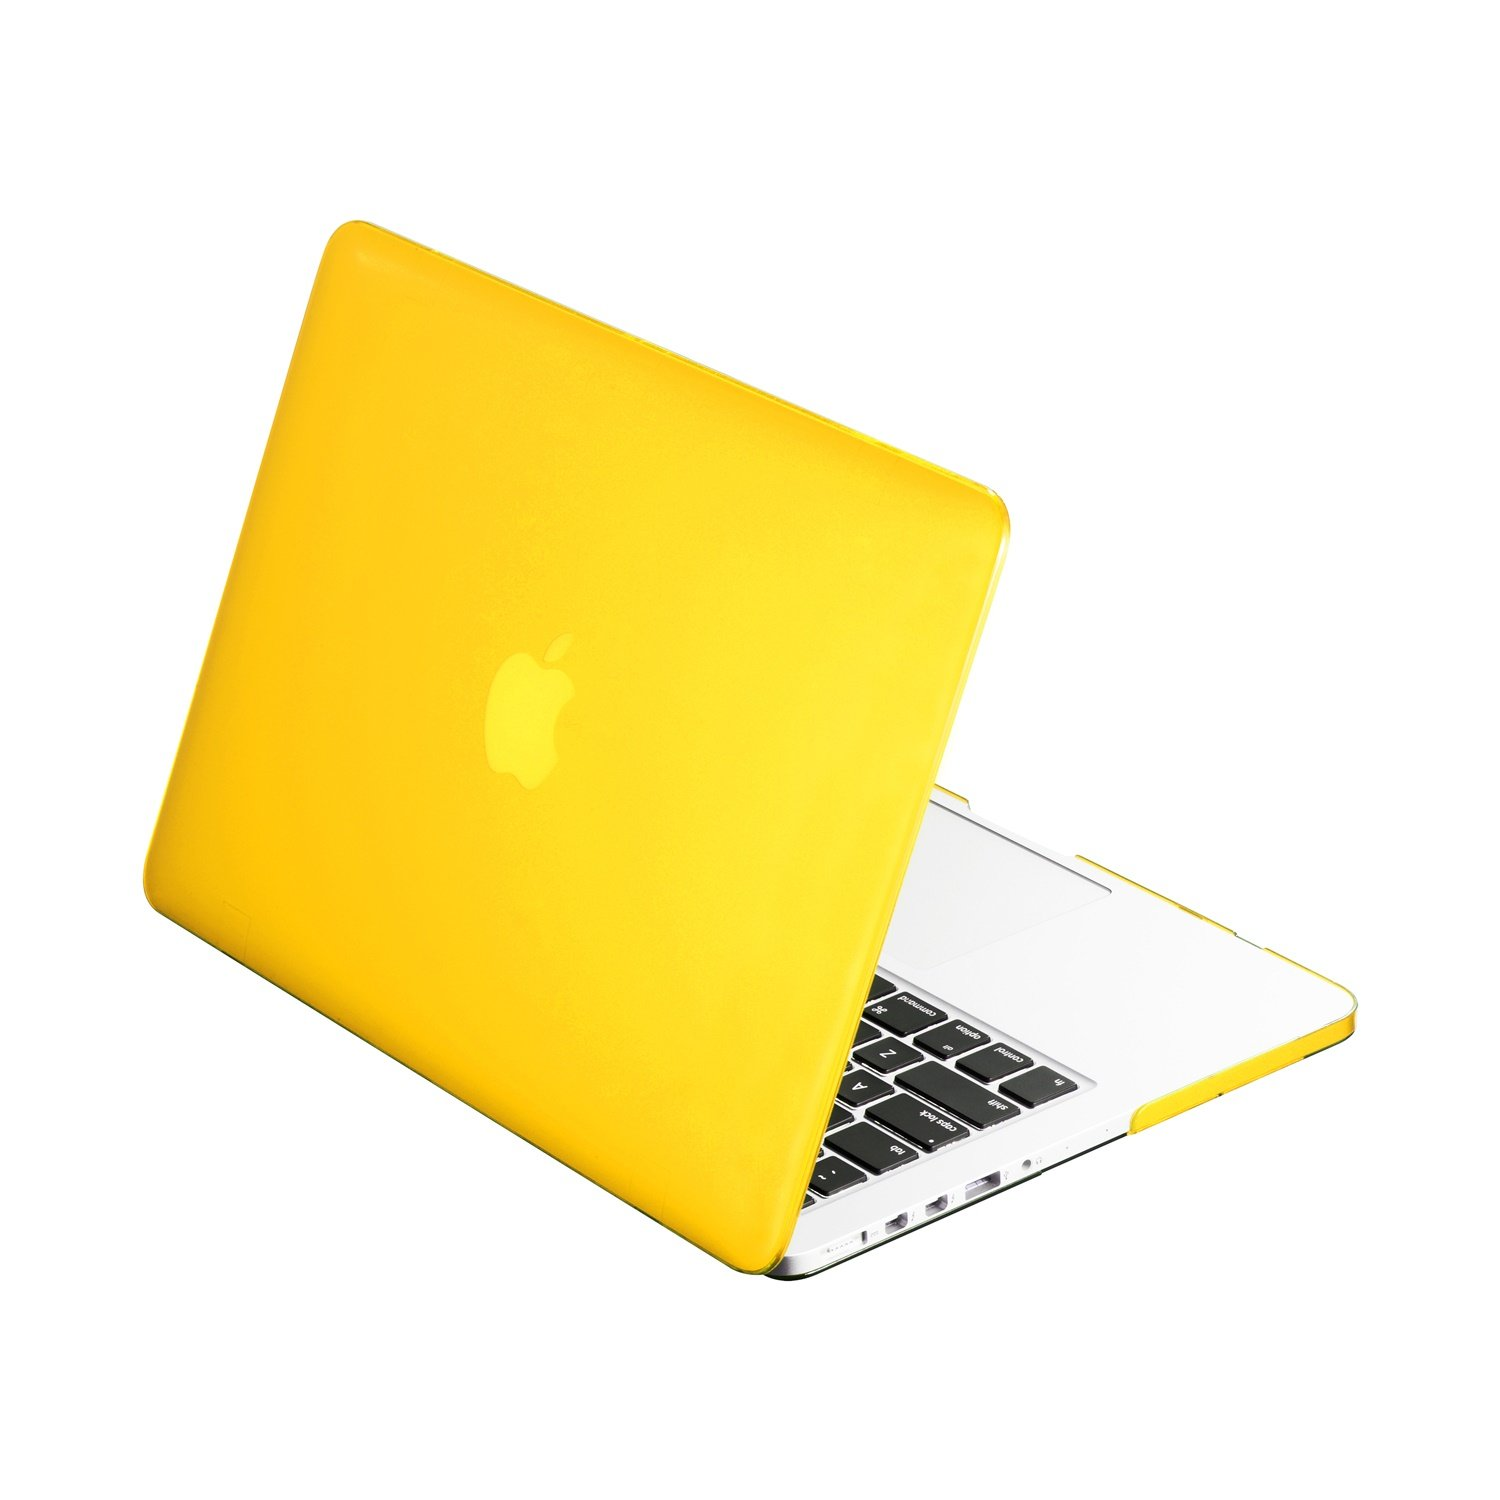 """TOP CASE - Classic Series Rubberized Satin Hard Case Compatible Old Generation MacBook Pro 15"""" A1398 with Retina Display (Release 2012-2015) - Yellow"""